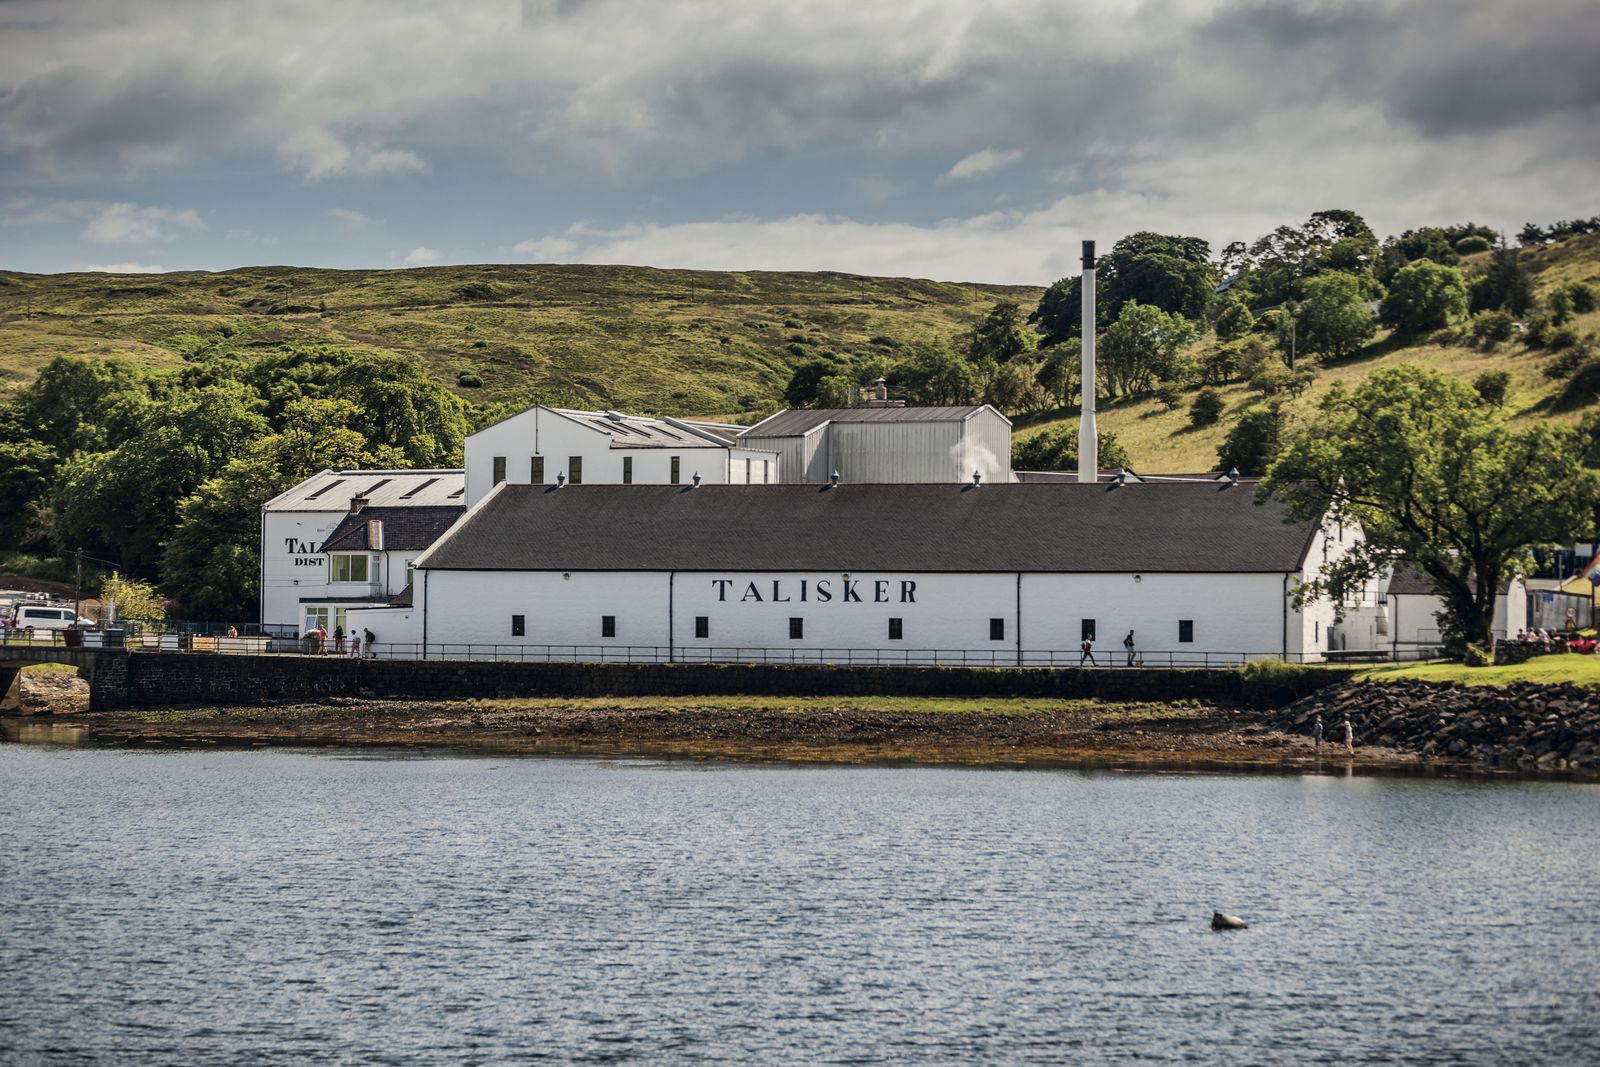 Prestige takes a tour of Talisker whisky's picturesque birthplace in the Isle of Skye